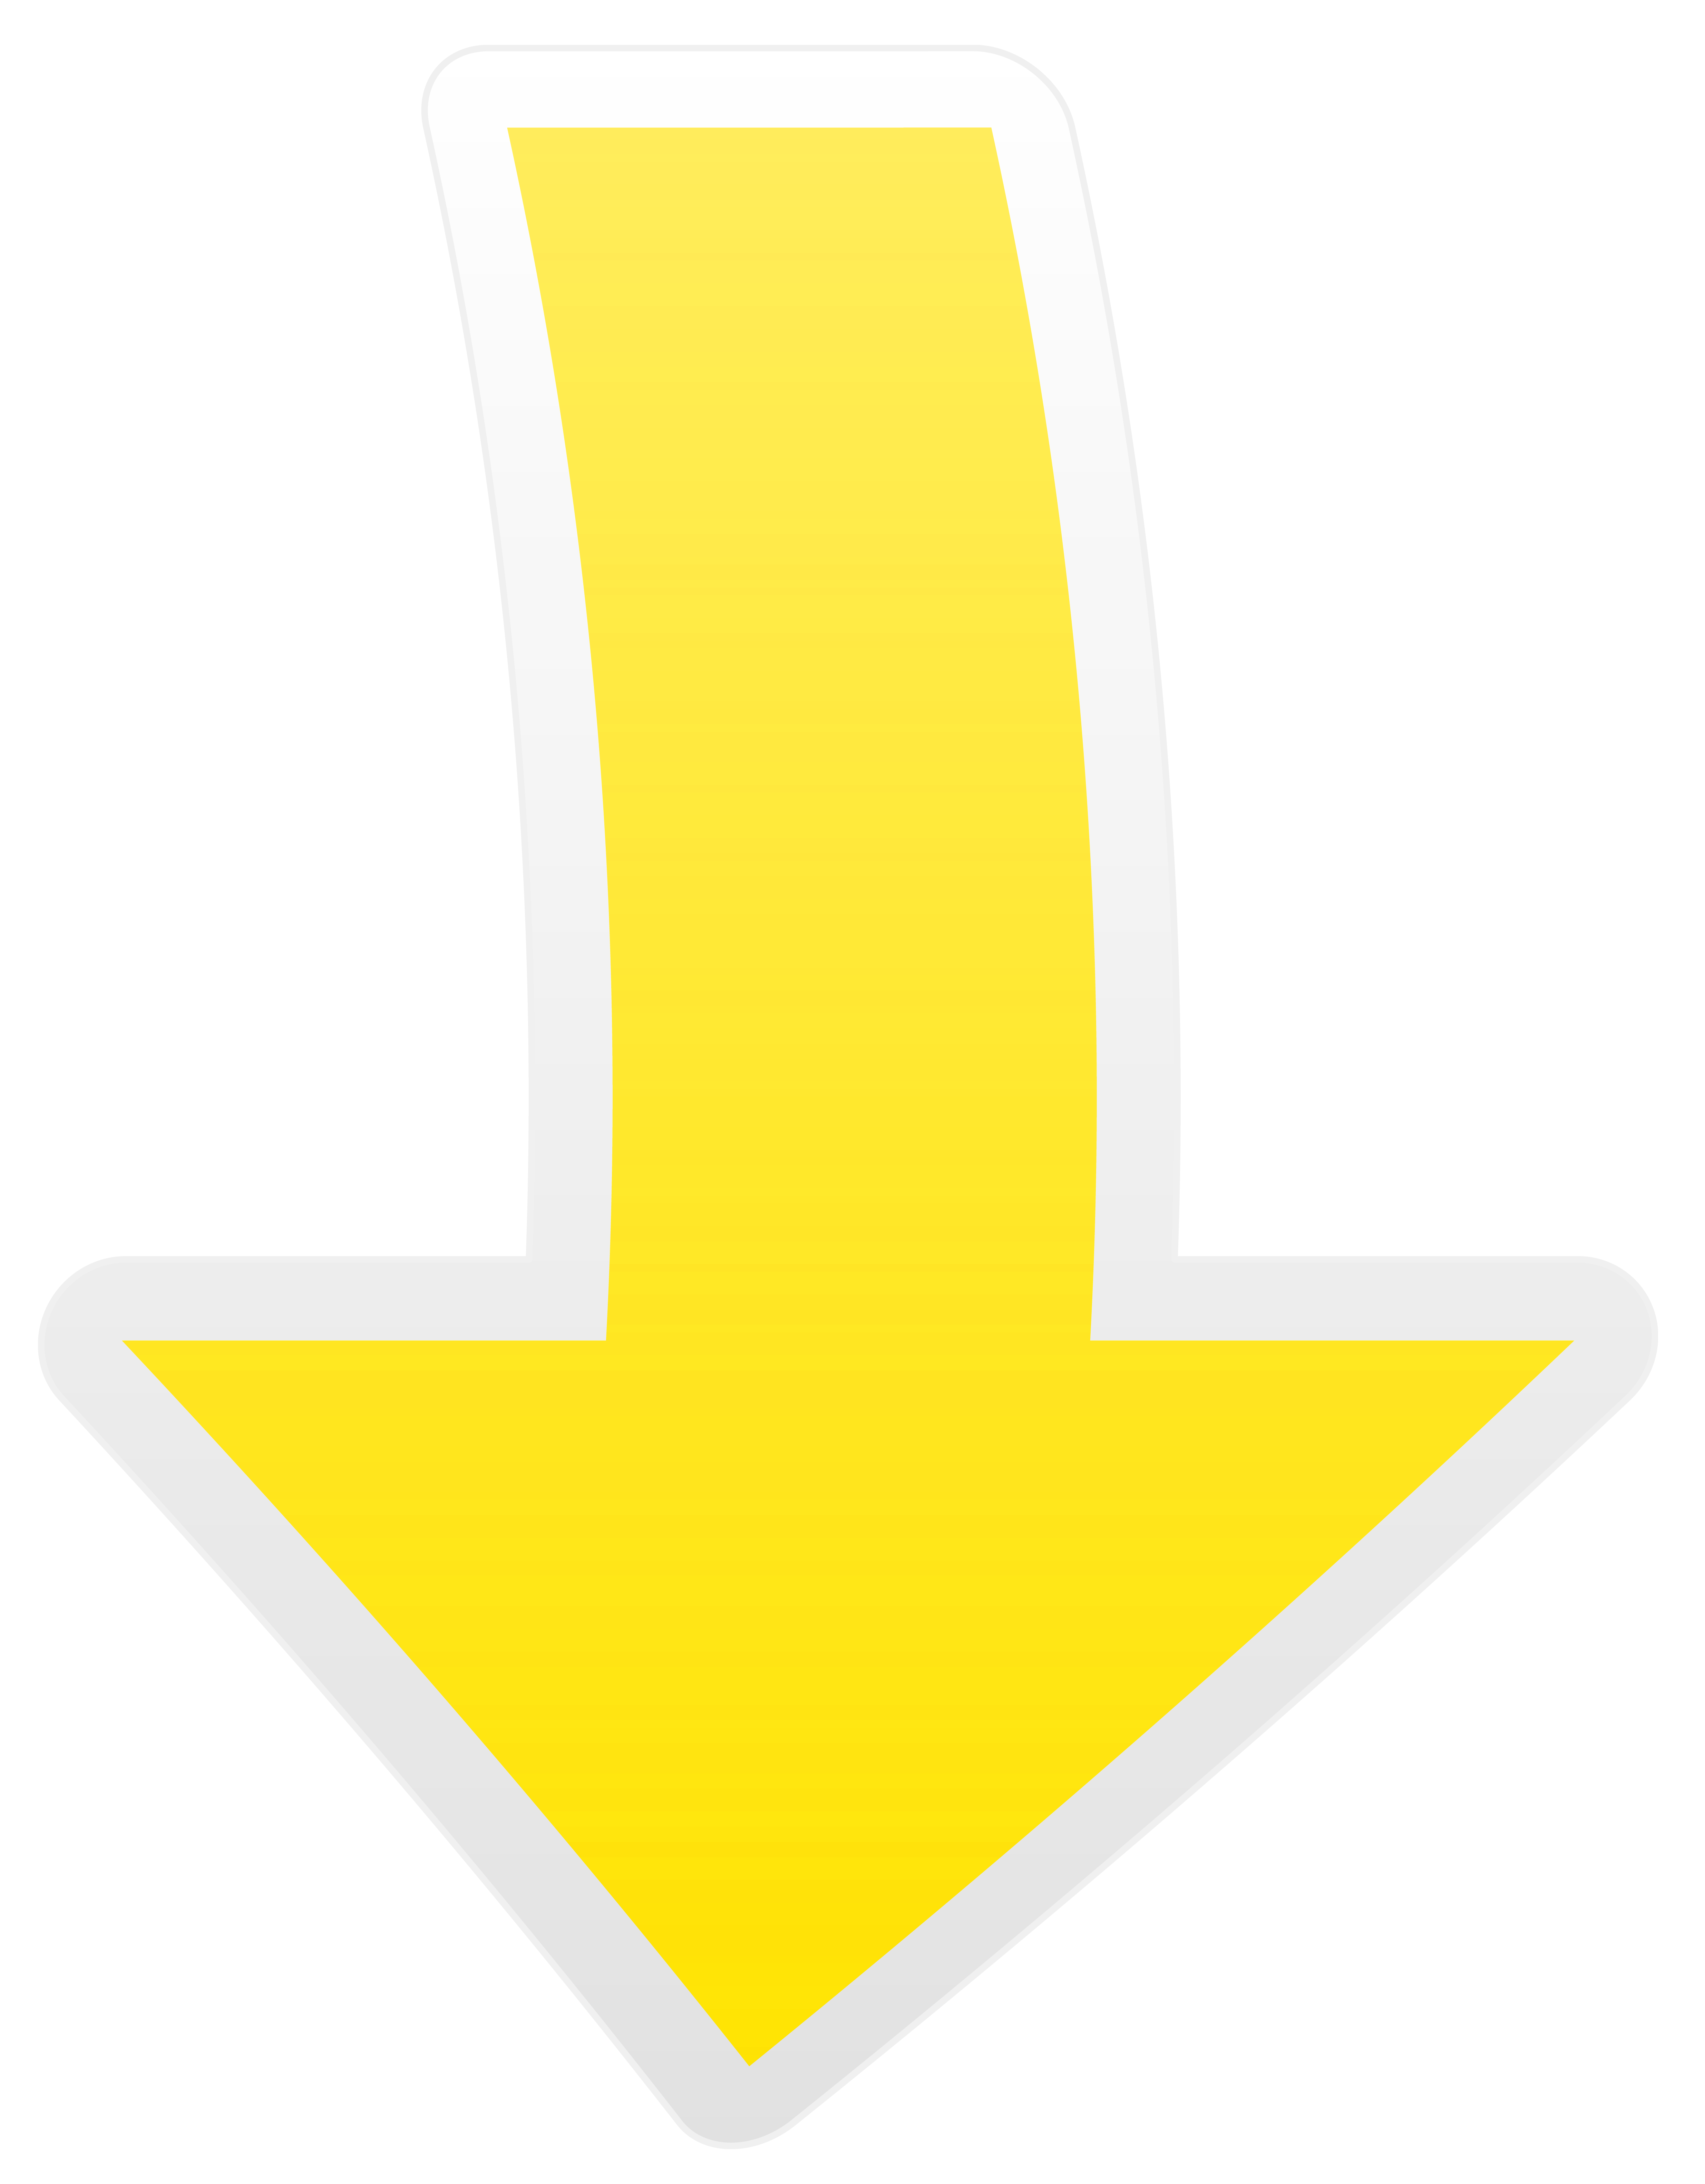 Clipart arrows yellow. Arrow down transparent png